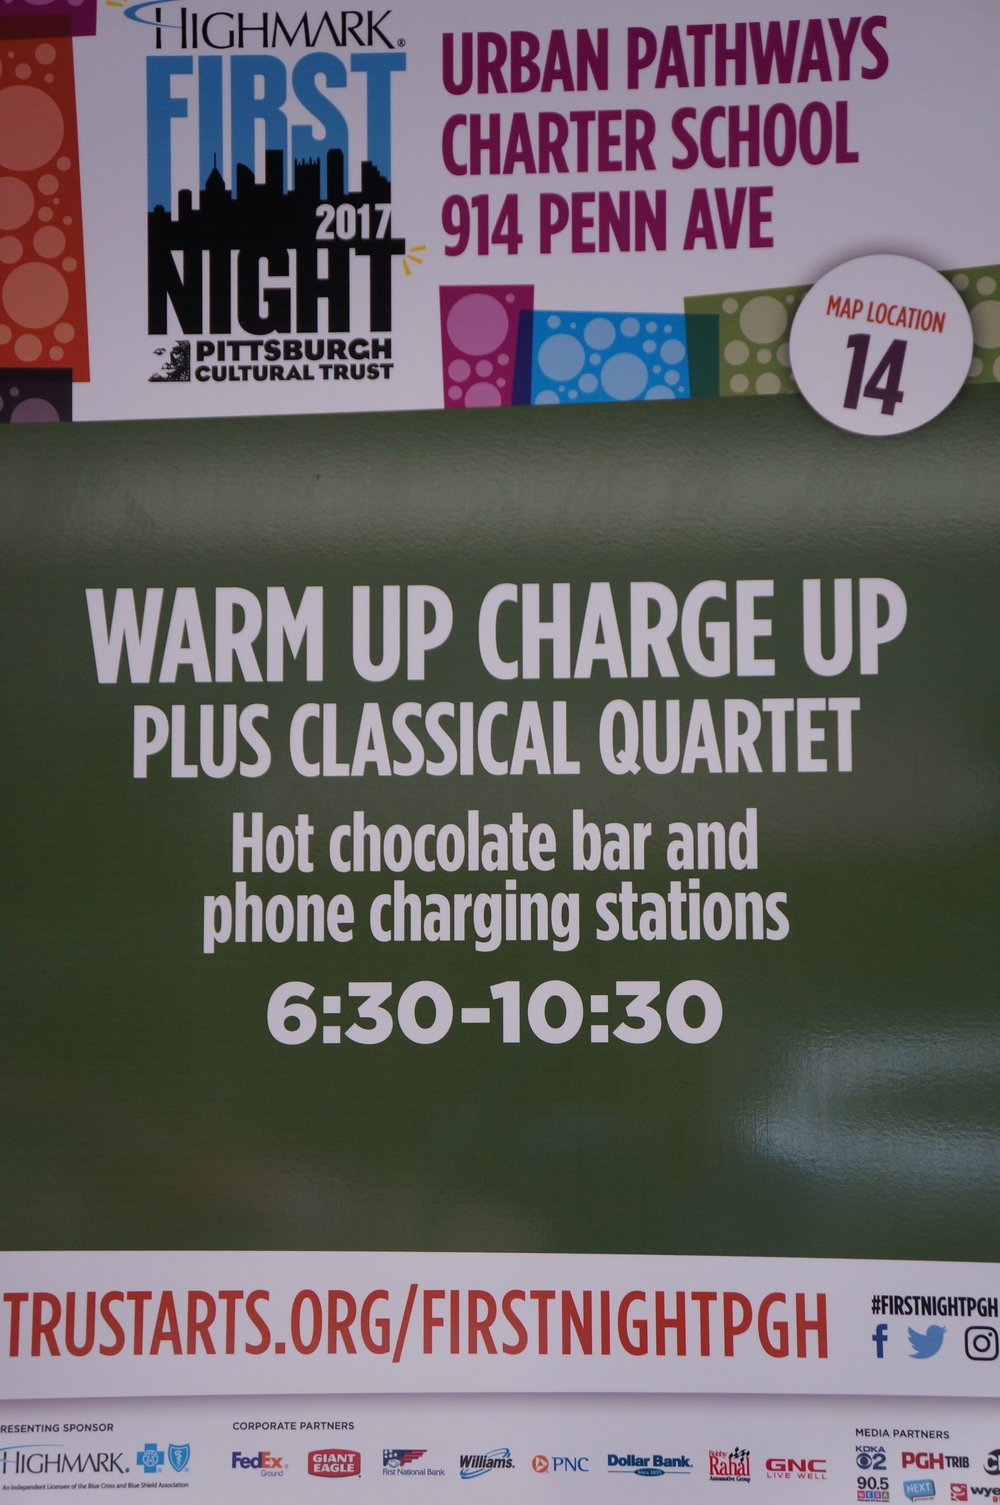 Warm Up Charge Up plus Classical Quartet  Hot Chocolate Bar and Phone Charging Stations  6:30-10:00